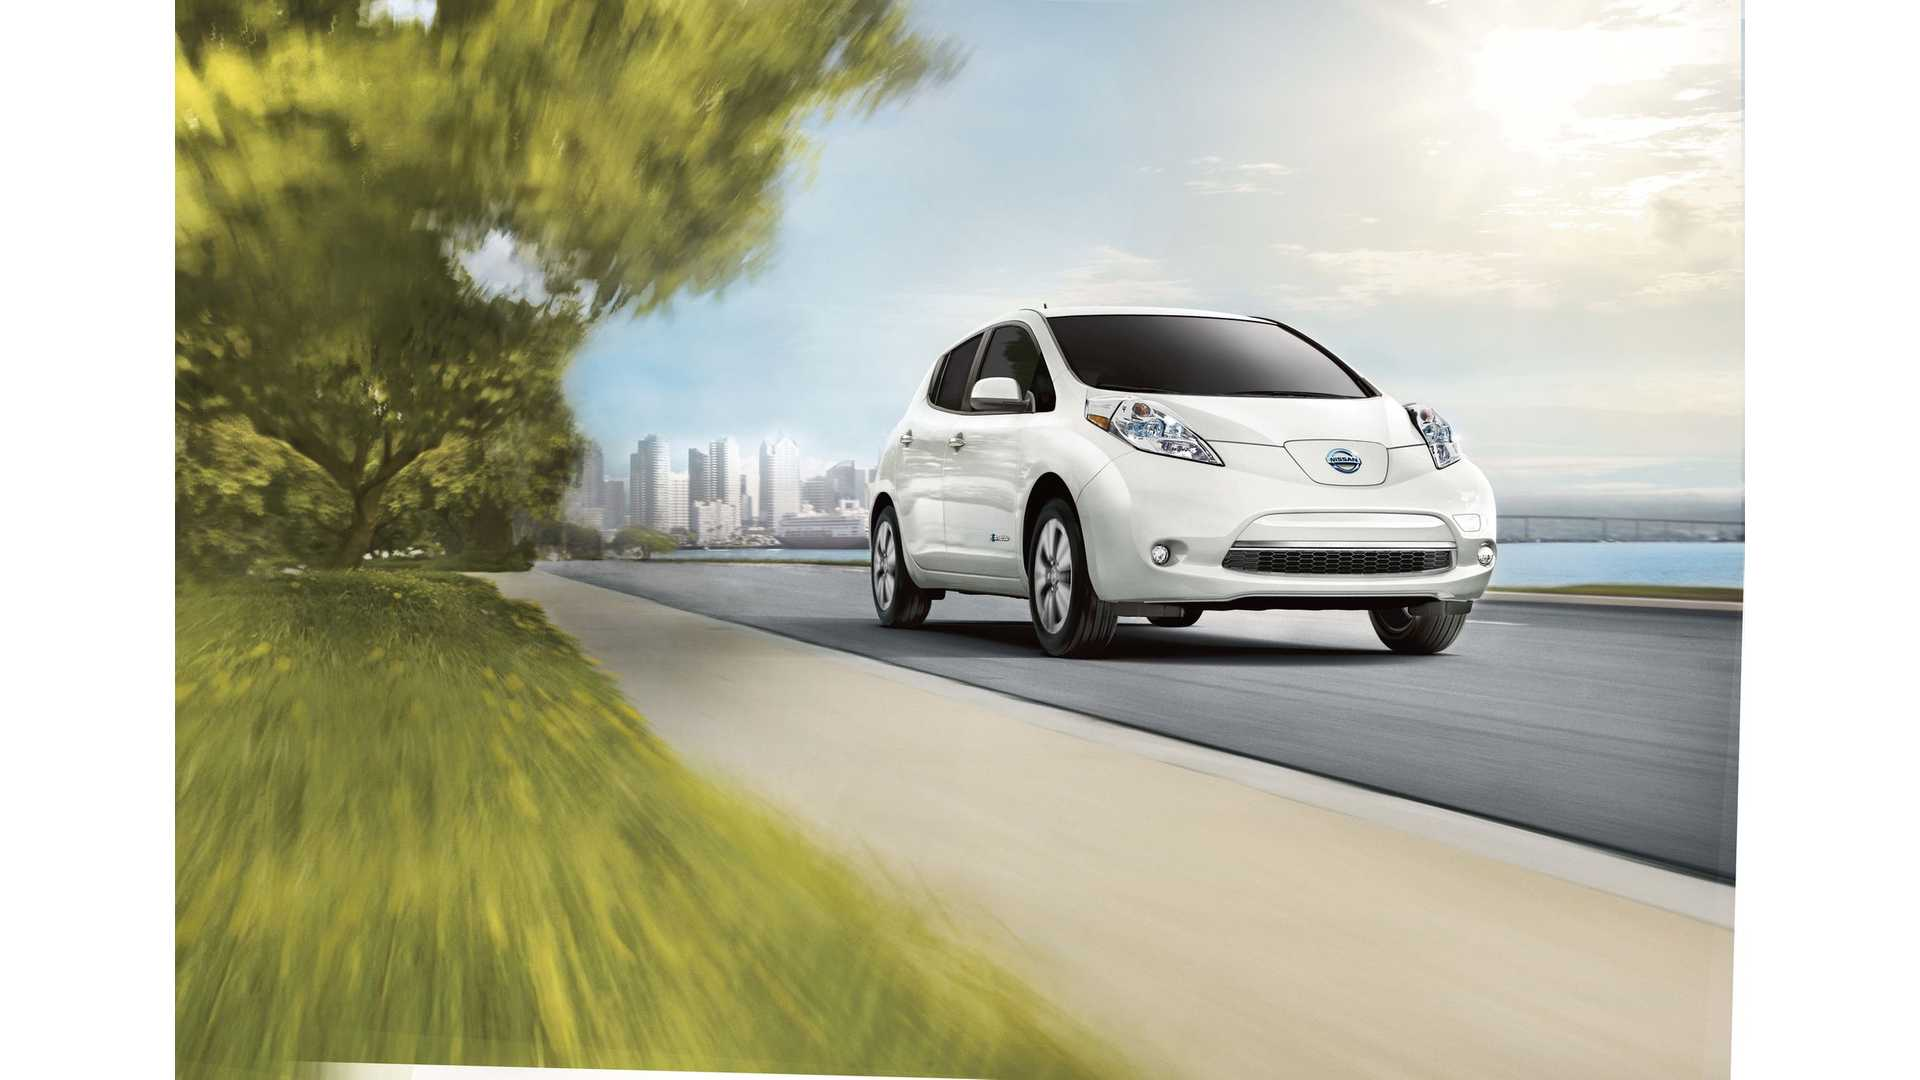 2017 Nissan Leaf Lower Cost Of Entry For 107 Miles Driving 30 Kwh Battery